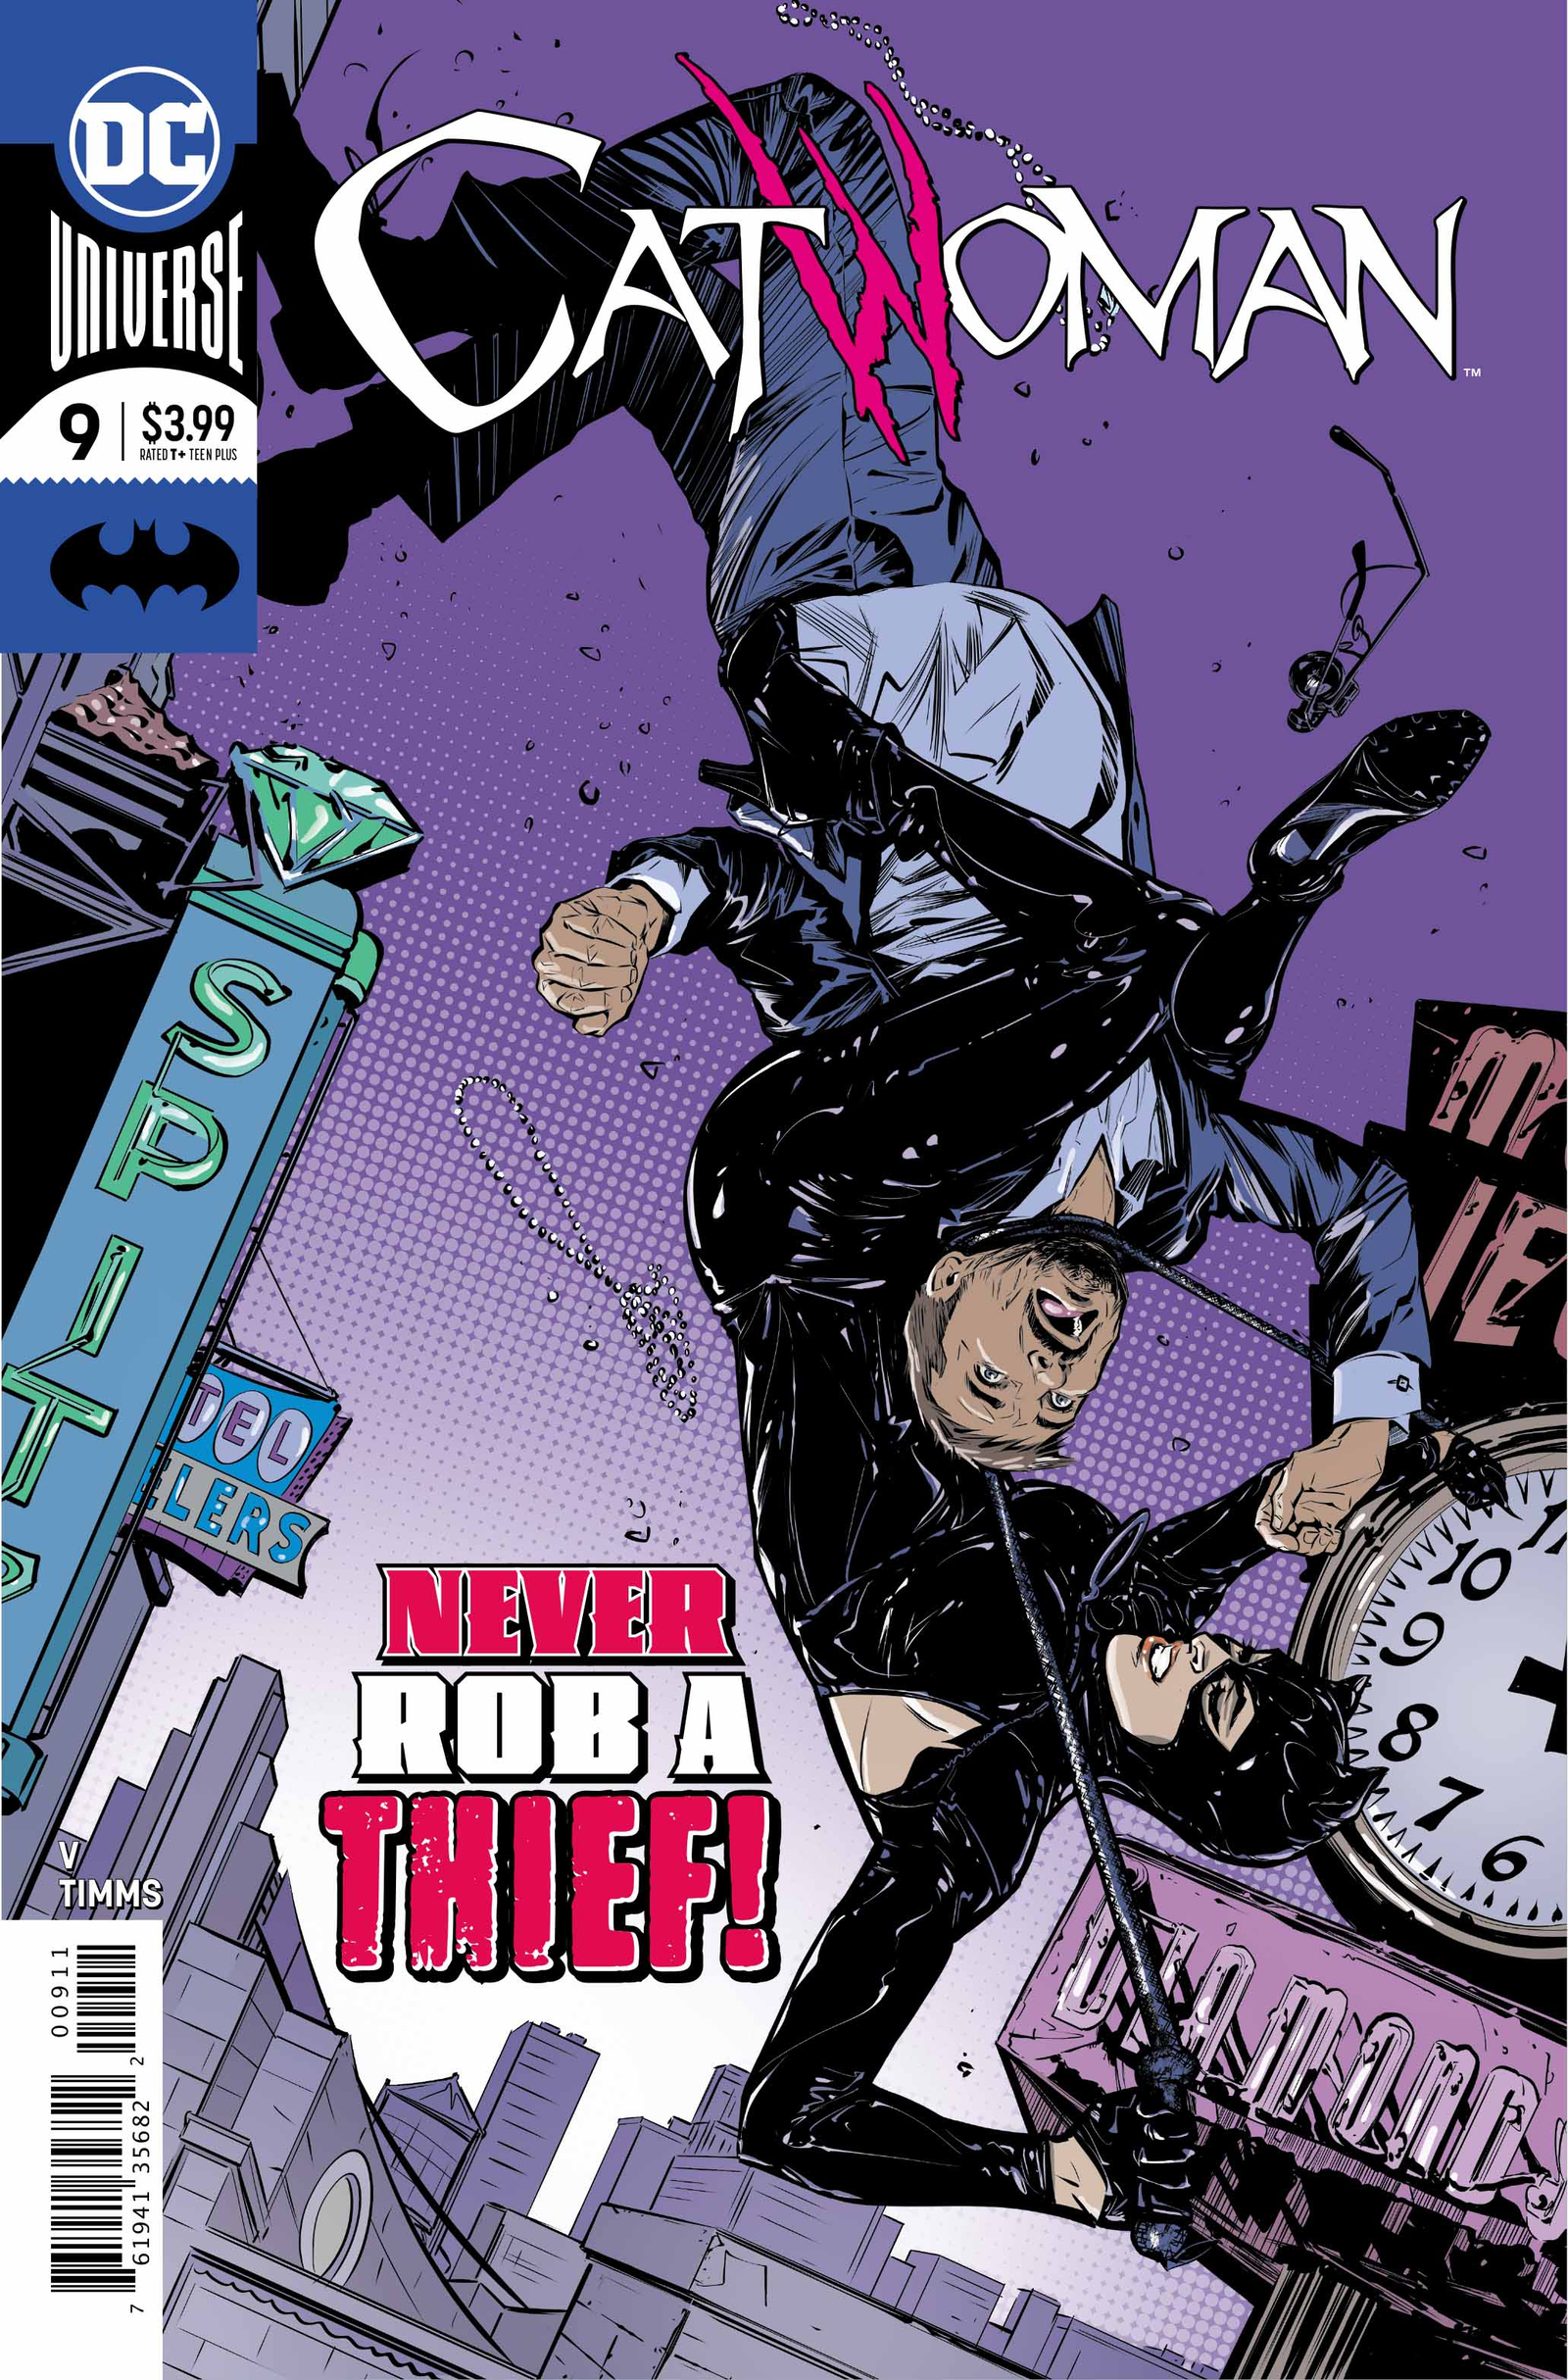 Cover by Joëlle Jones and Laura Allred